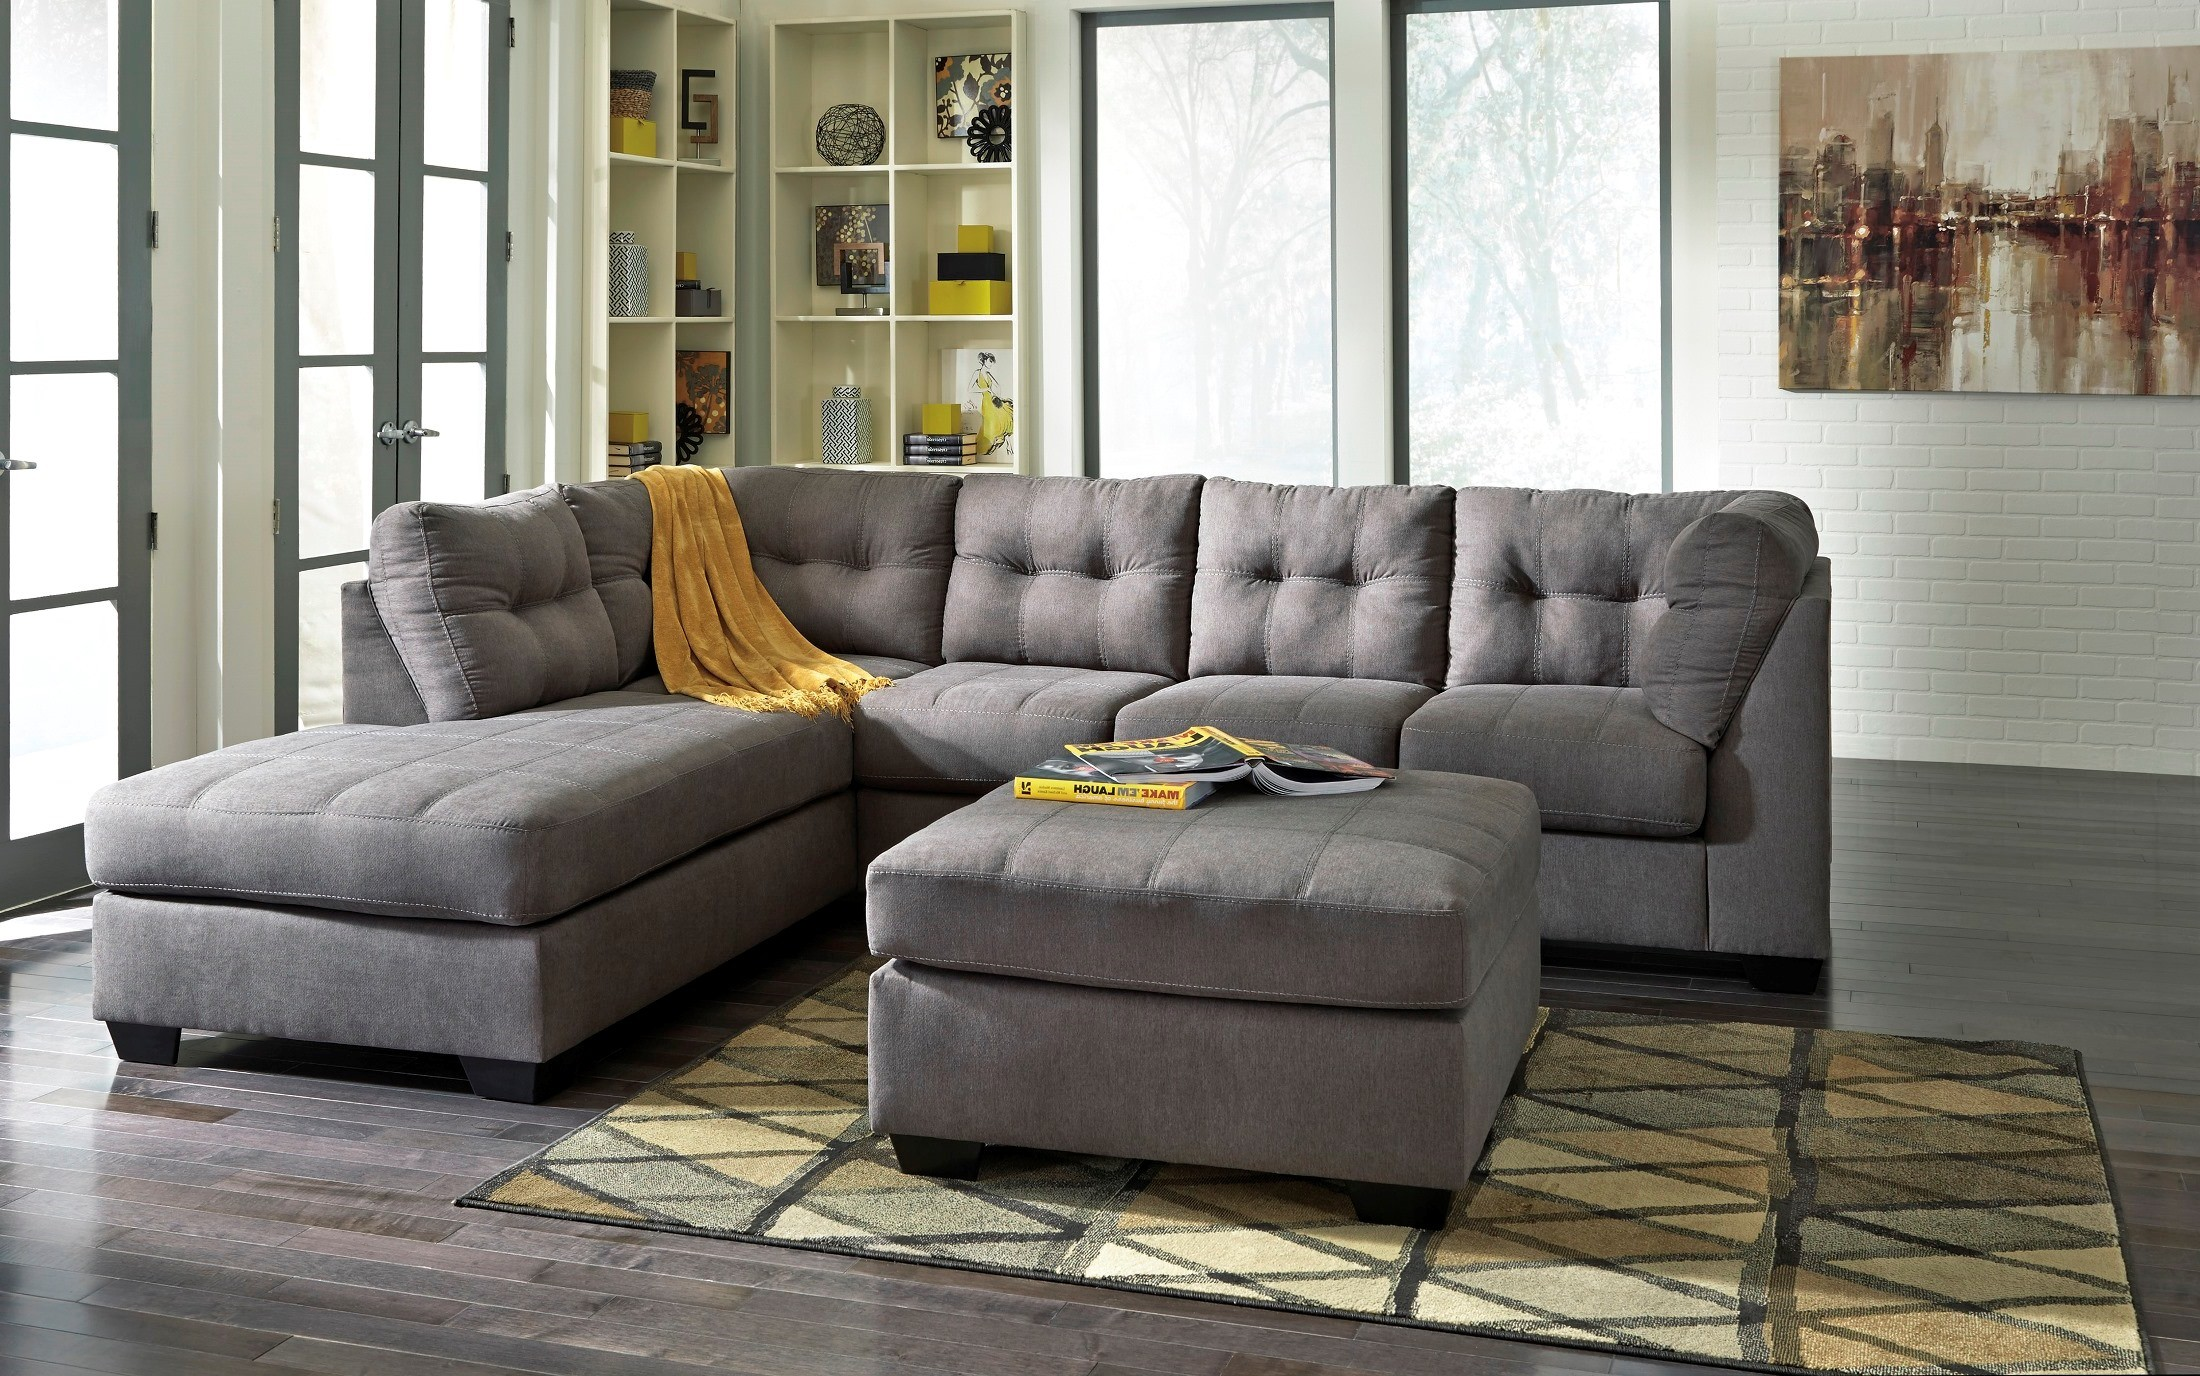 Maier Charcoal LAF Sectional from Ashley 16 67